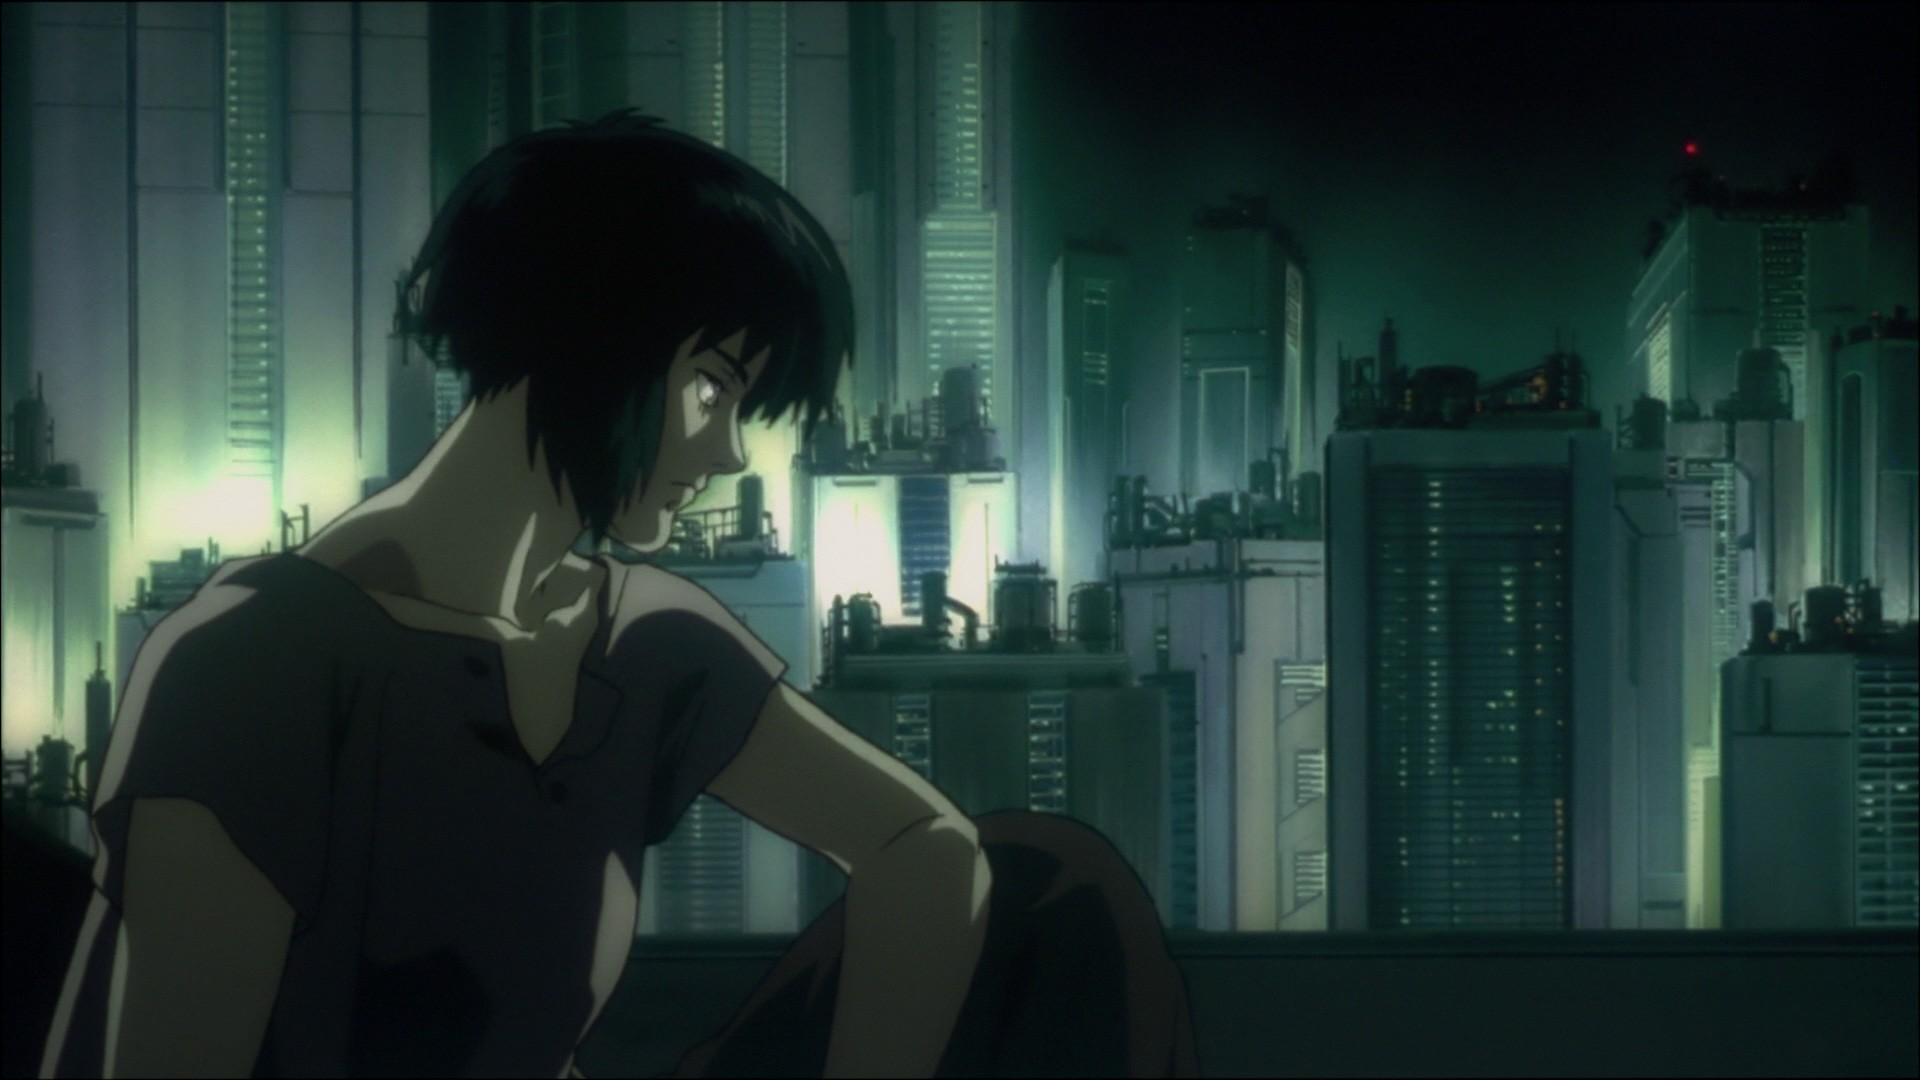 Ghost In The Shell Returns To Theaters Film Tv San Antonio San Antonio Current